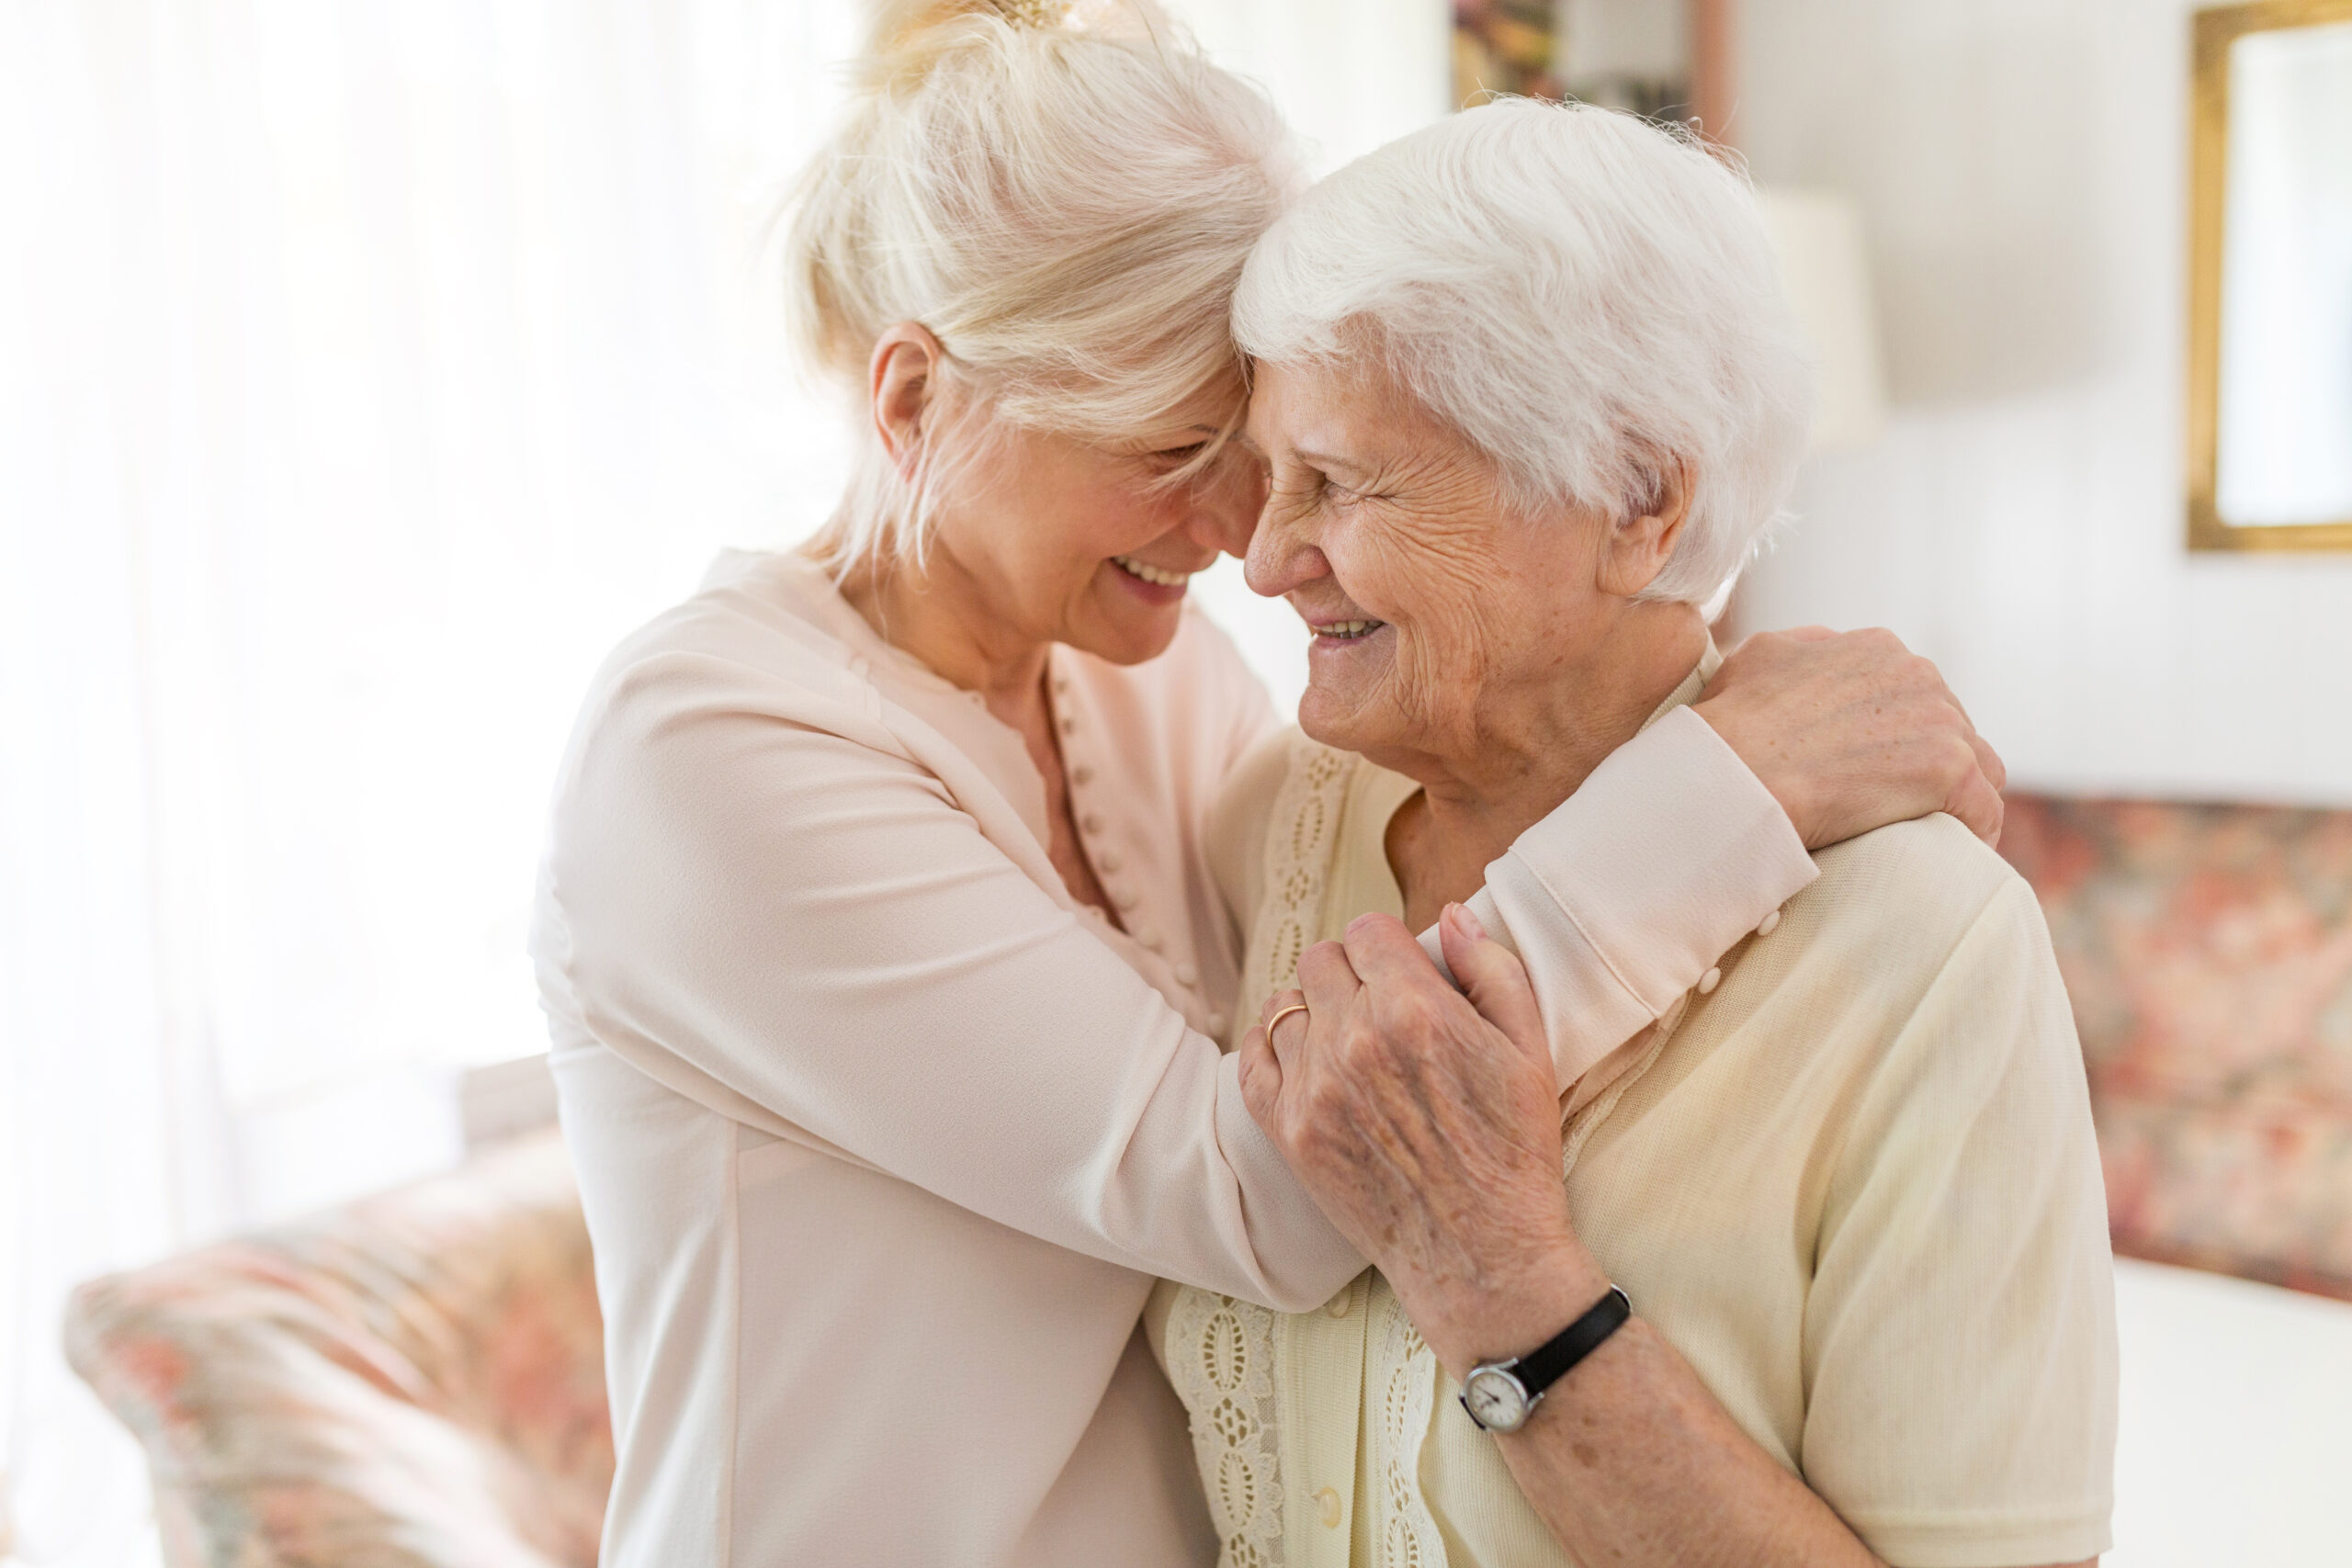 diseases that qualify for hospice